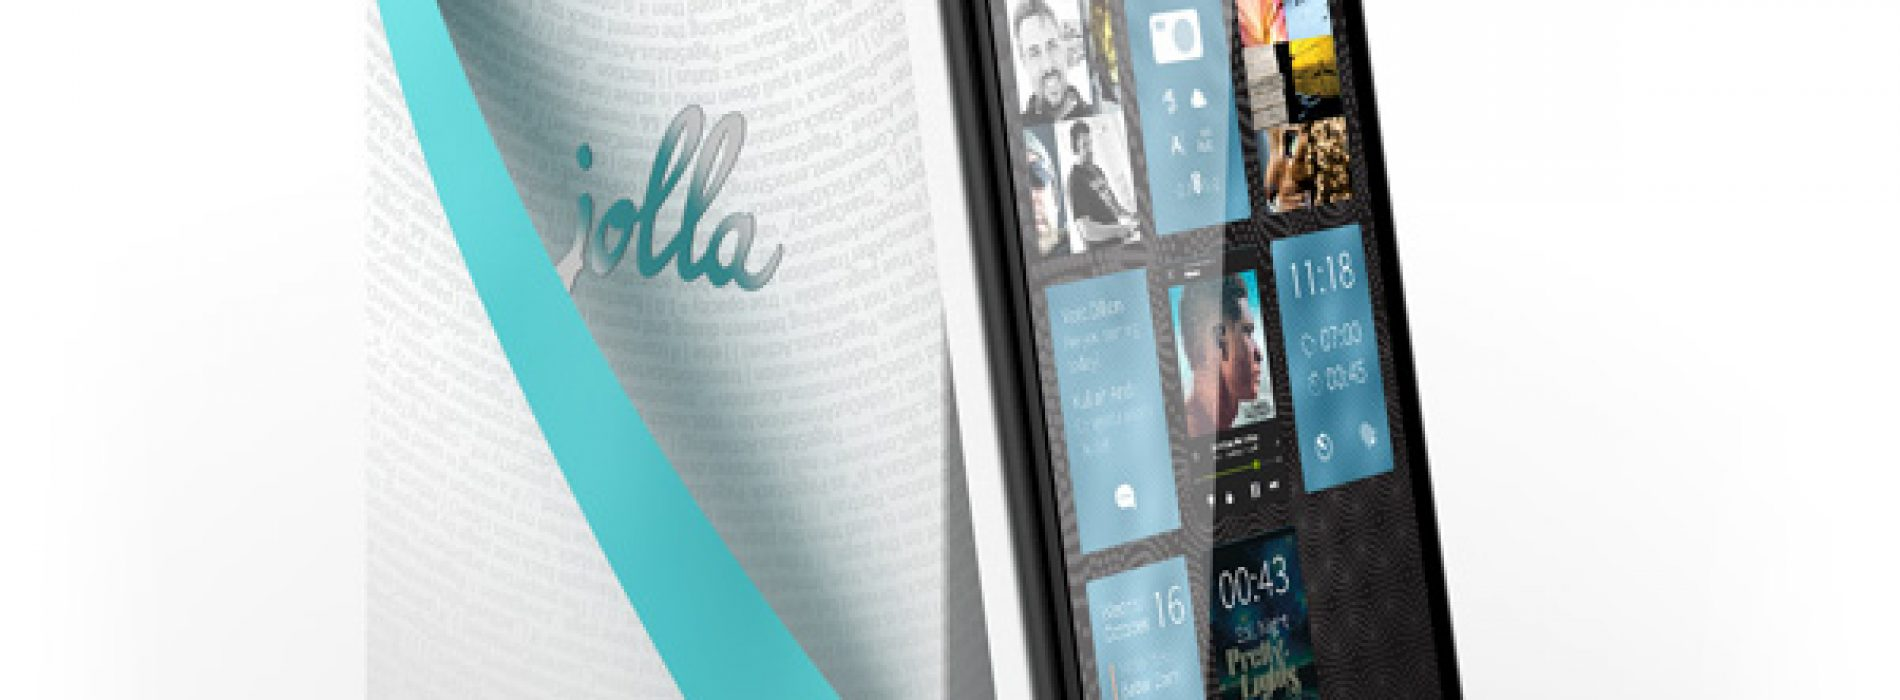 The first Sailfish OS device JOLLA is coming to INDIA